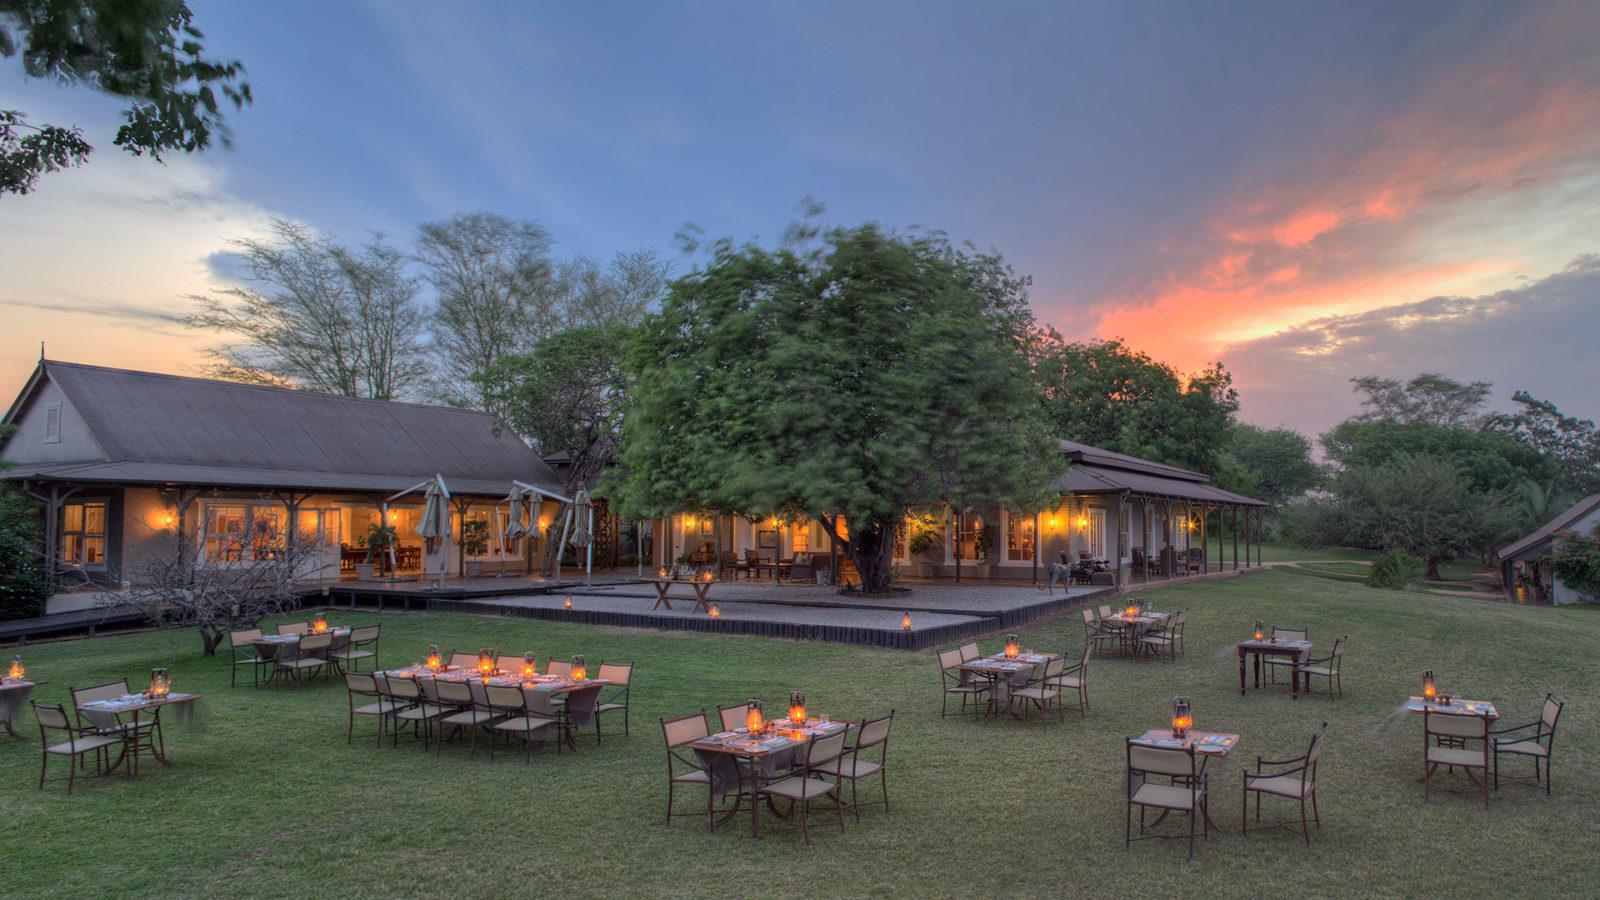 Header-guest-area-at-andbeyond-kirkmans-kamp-on-a-luxury-sabi-sand-safari-in-south-africa-1600x900.jpg